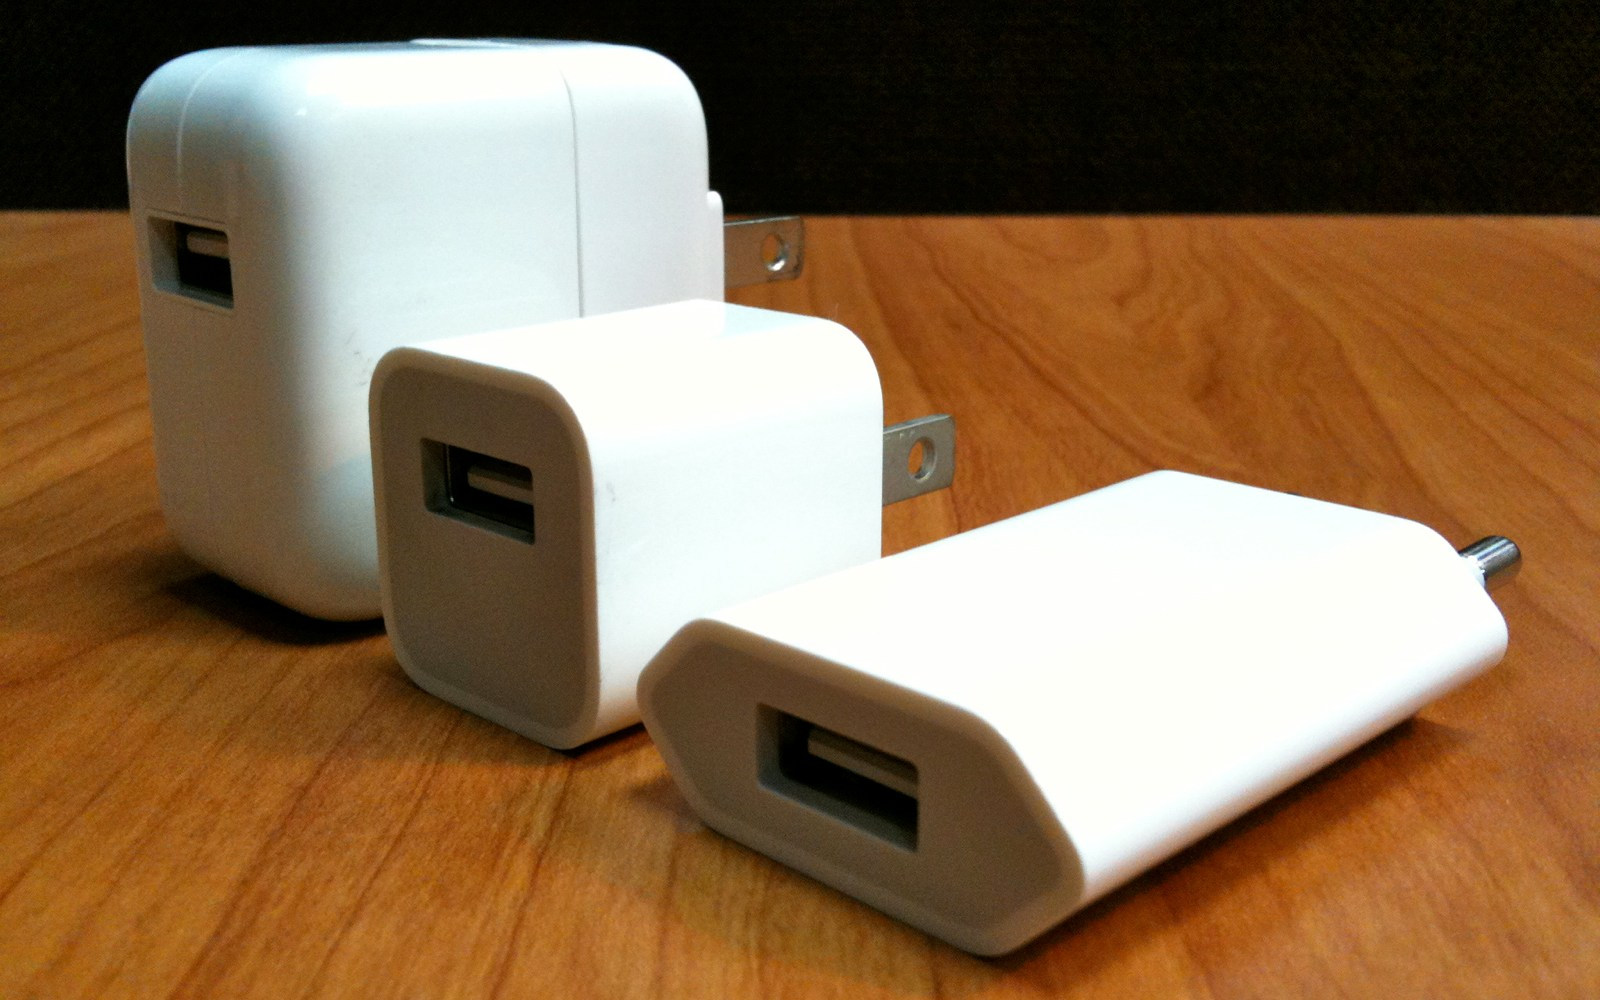 Following electrocution controversy, Apple to offer USB power adapter replacements